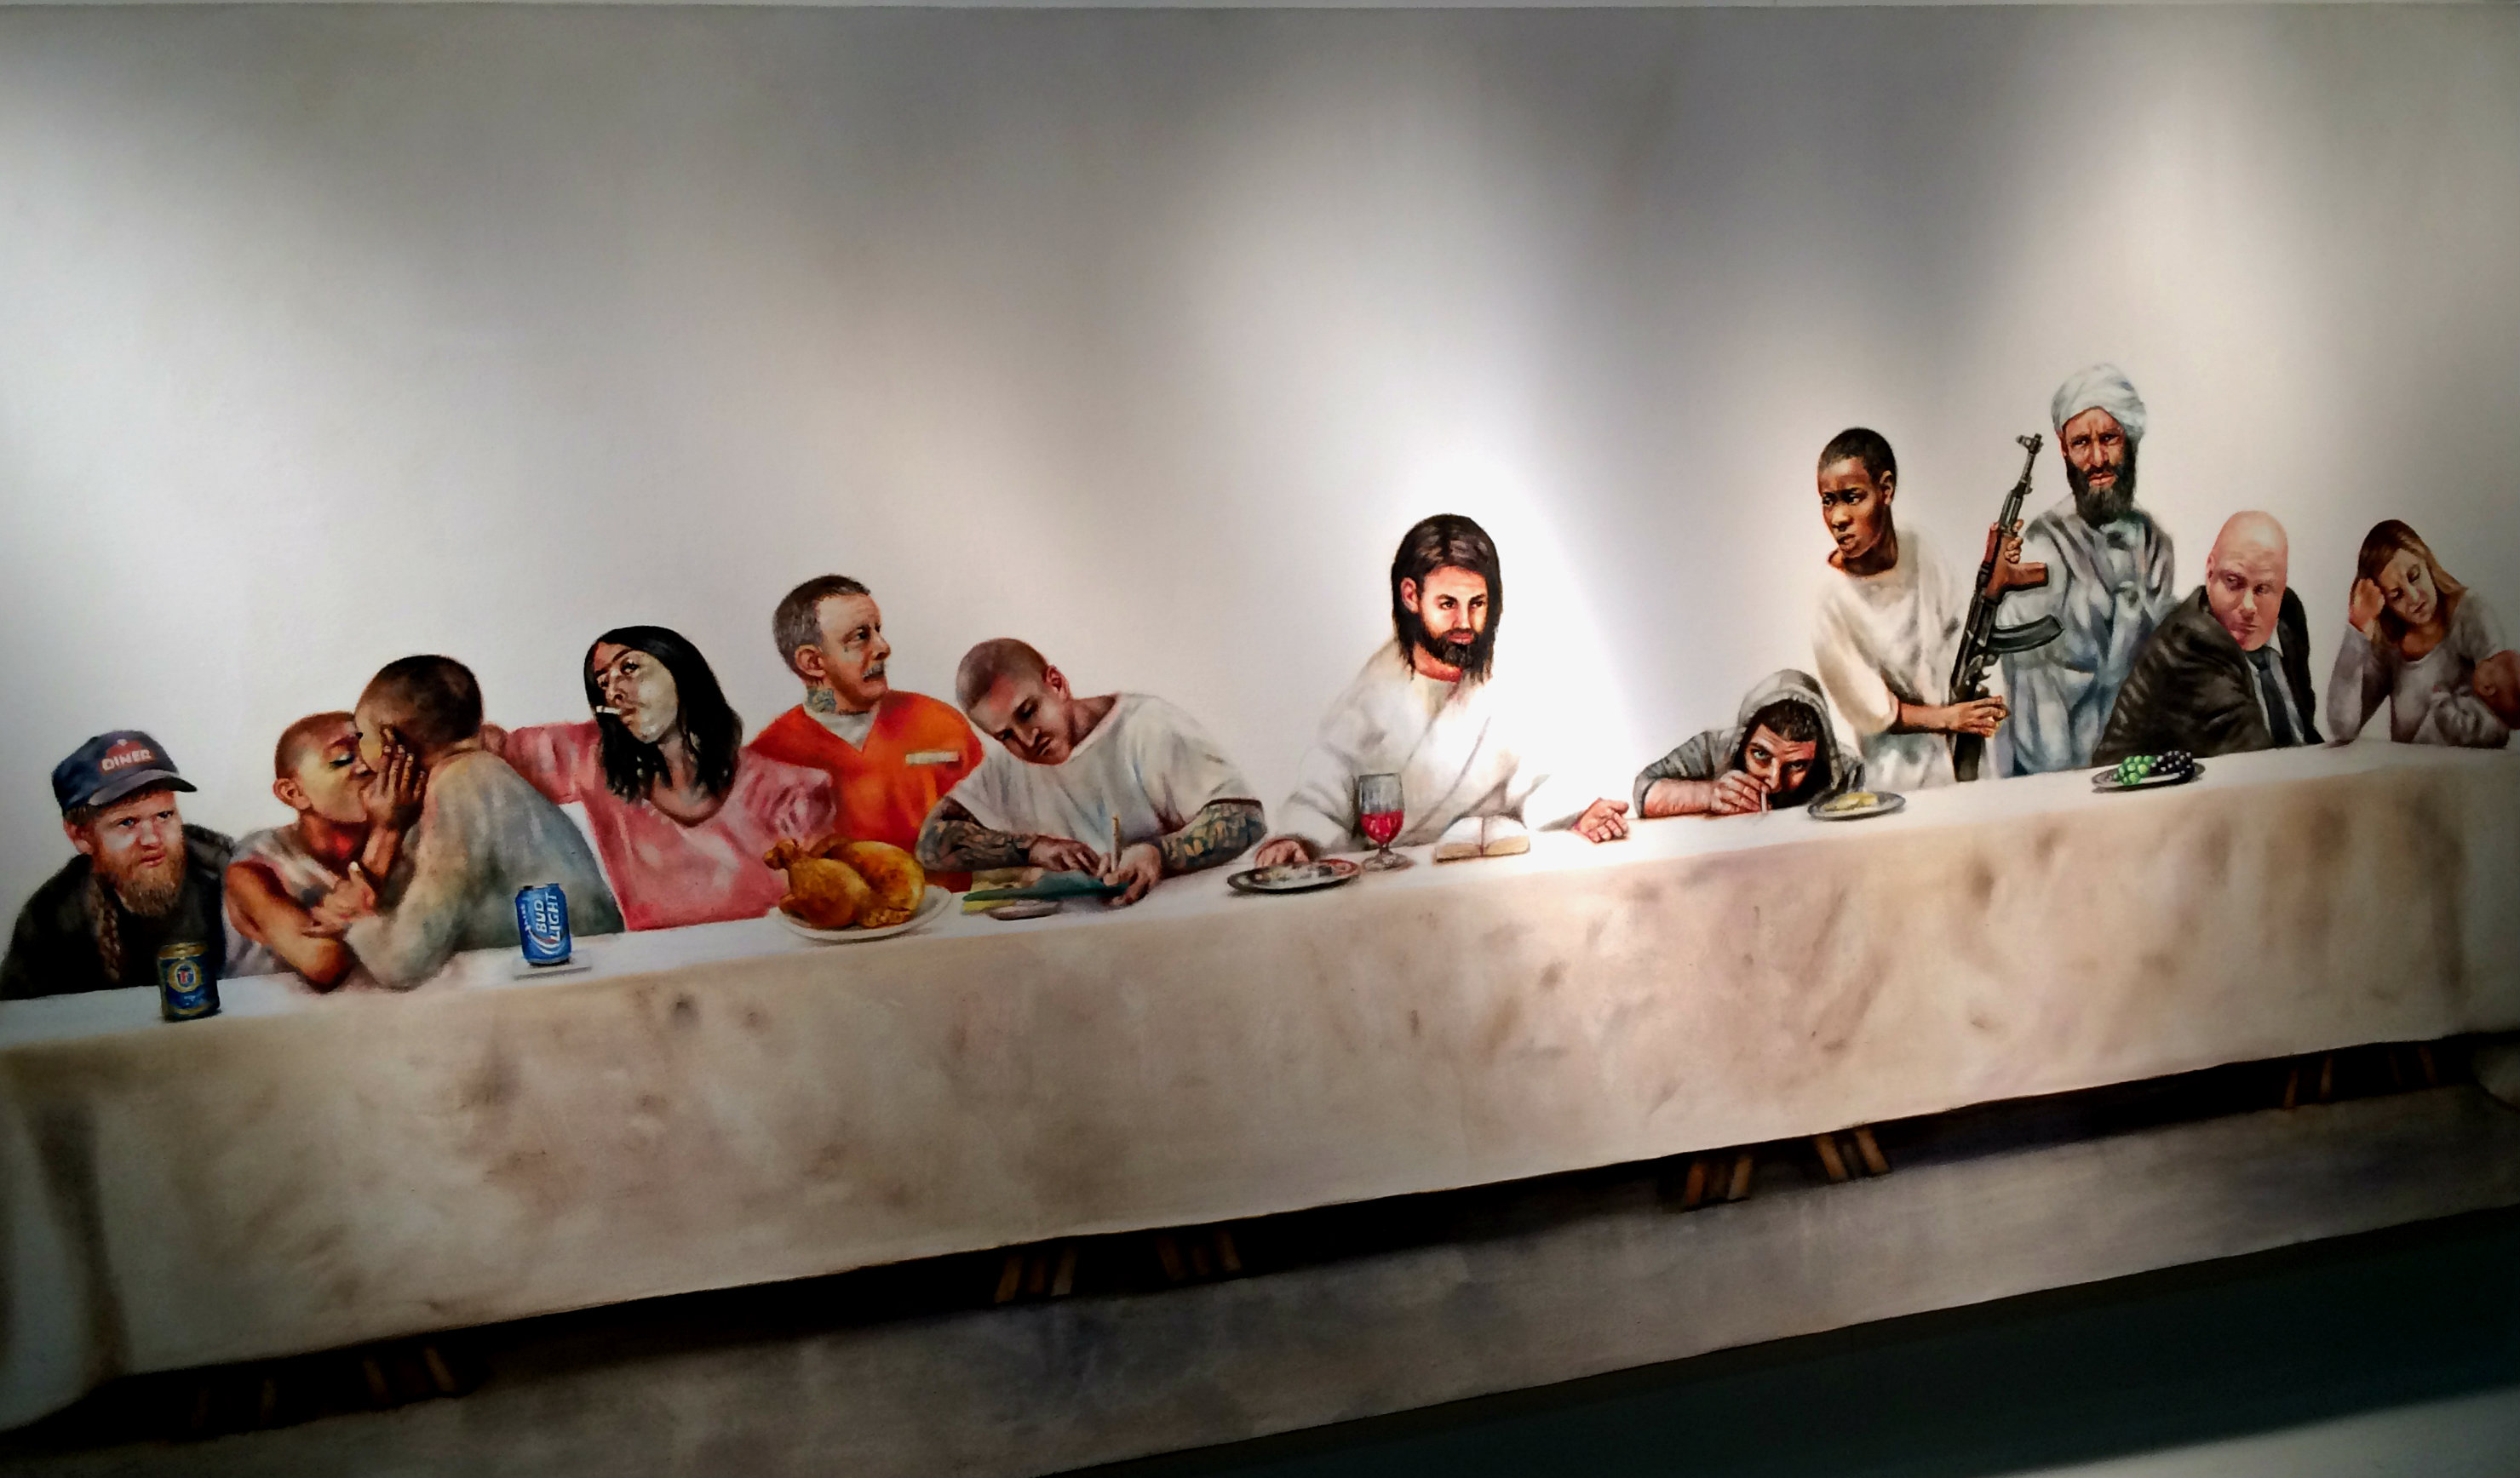 The Last Supper by Johan Andersson